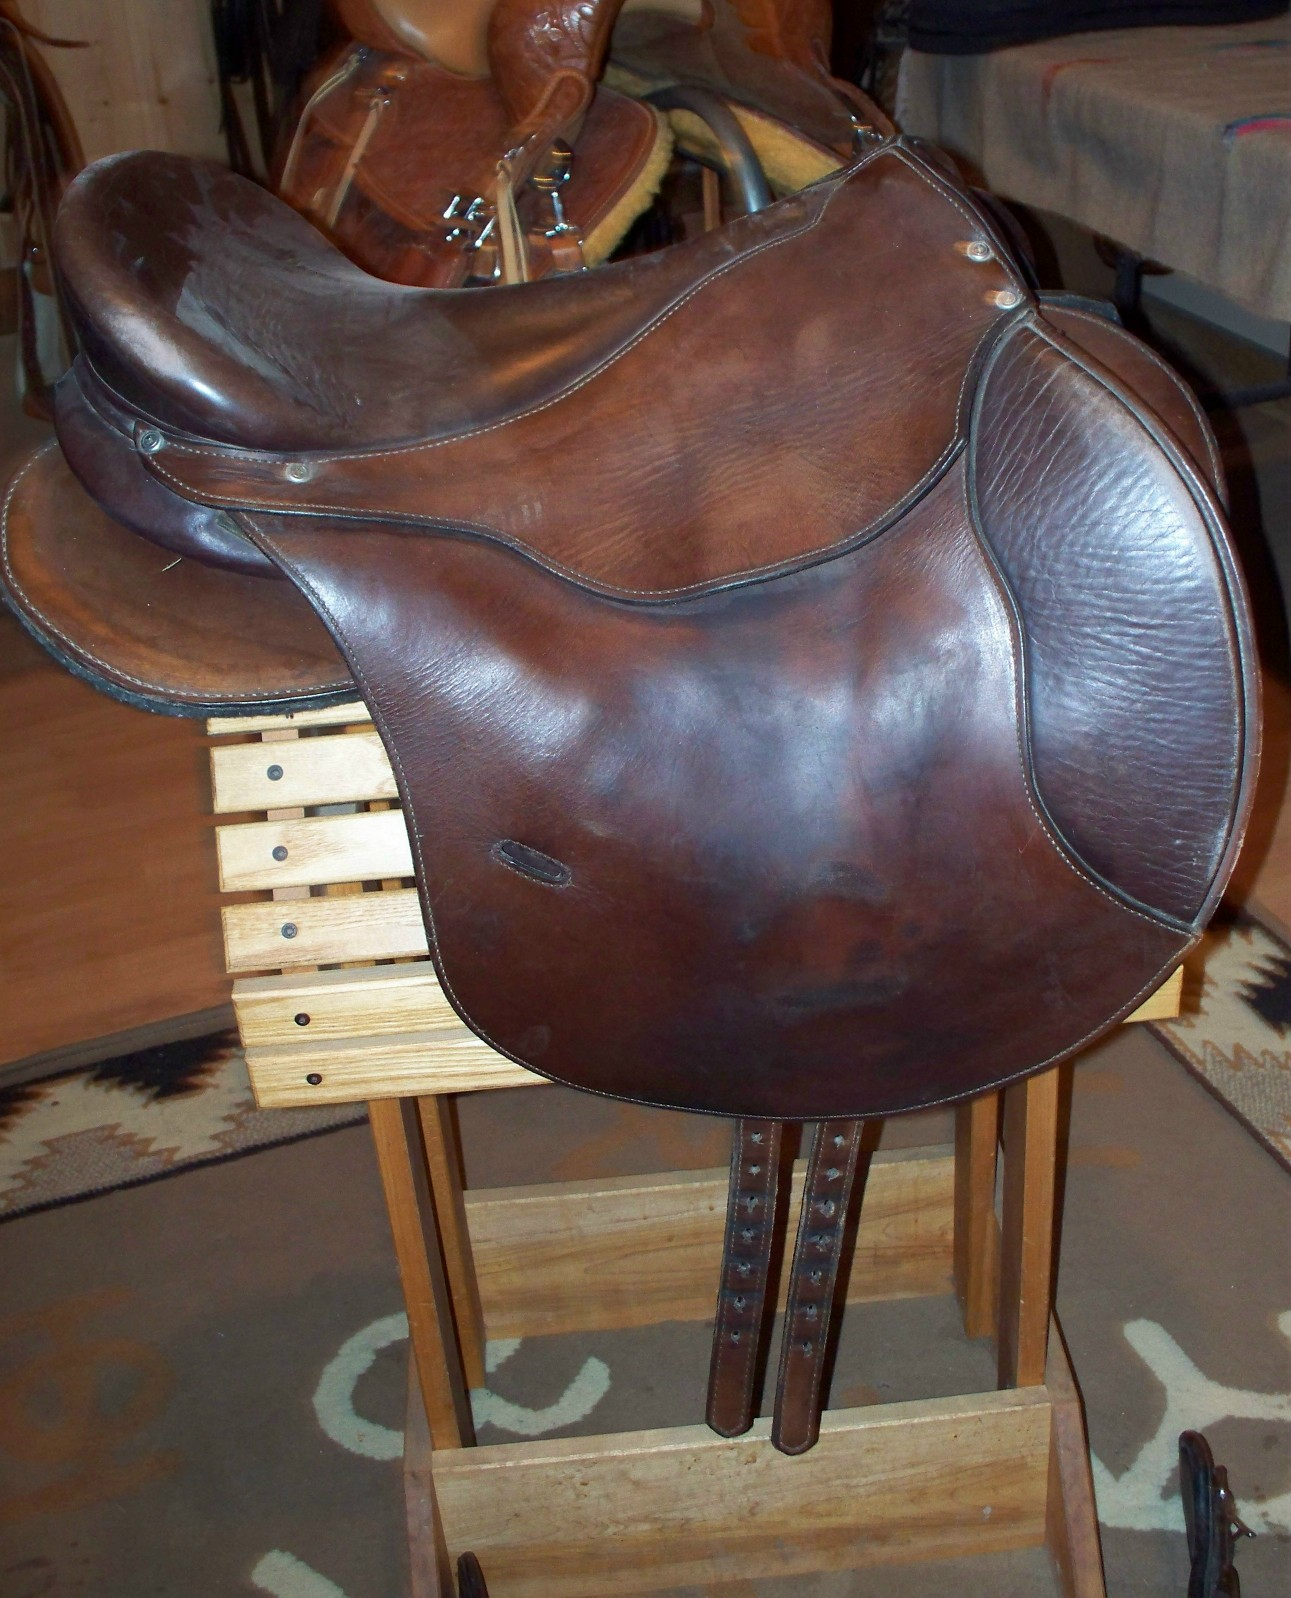 Timberline Harmony English Saddle